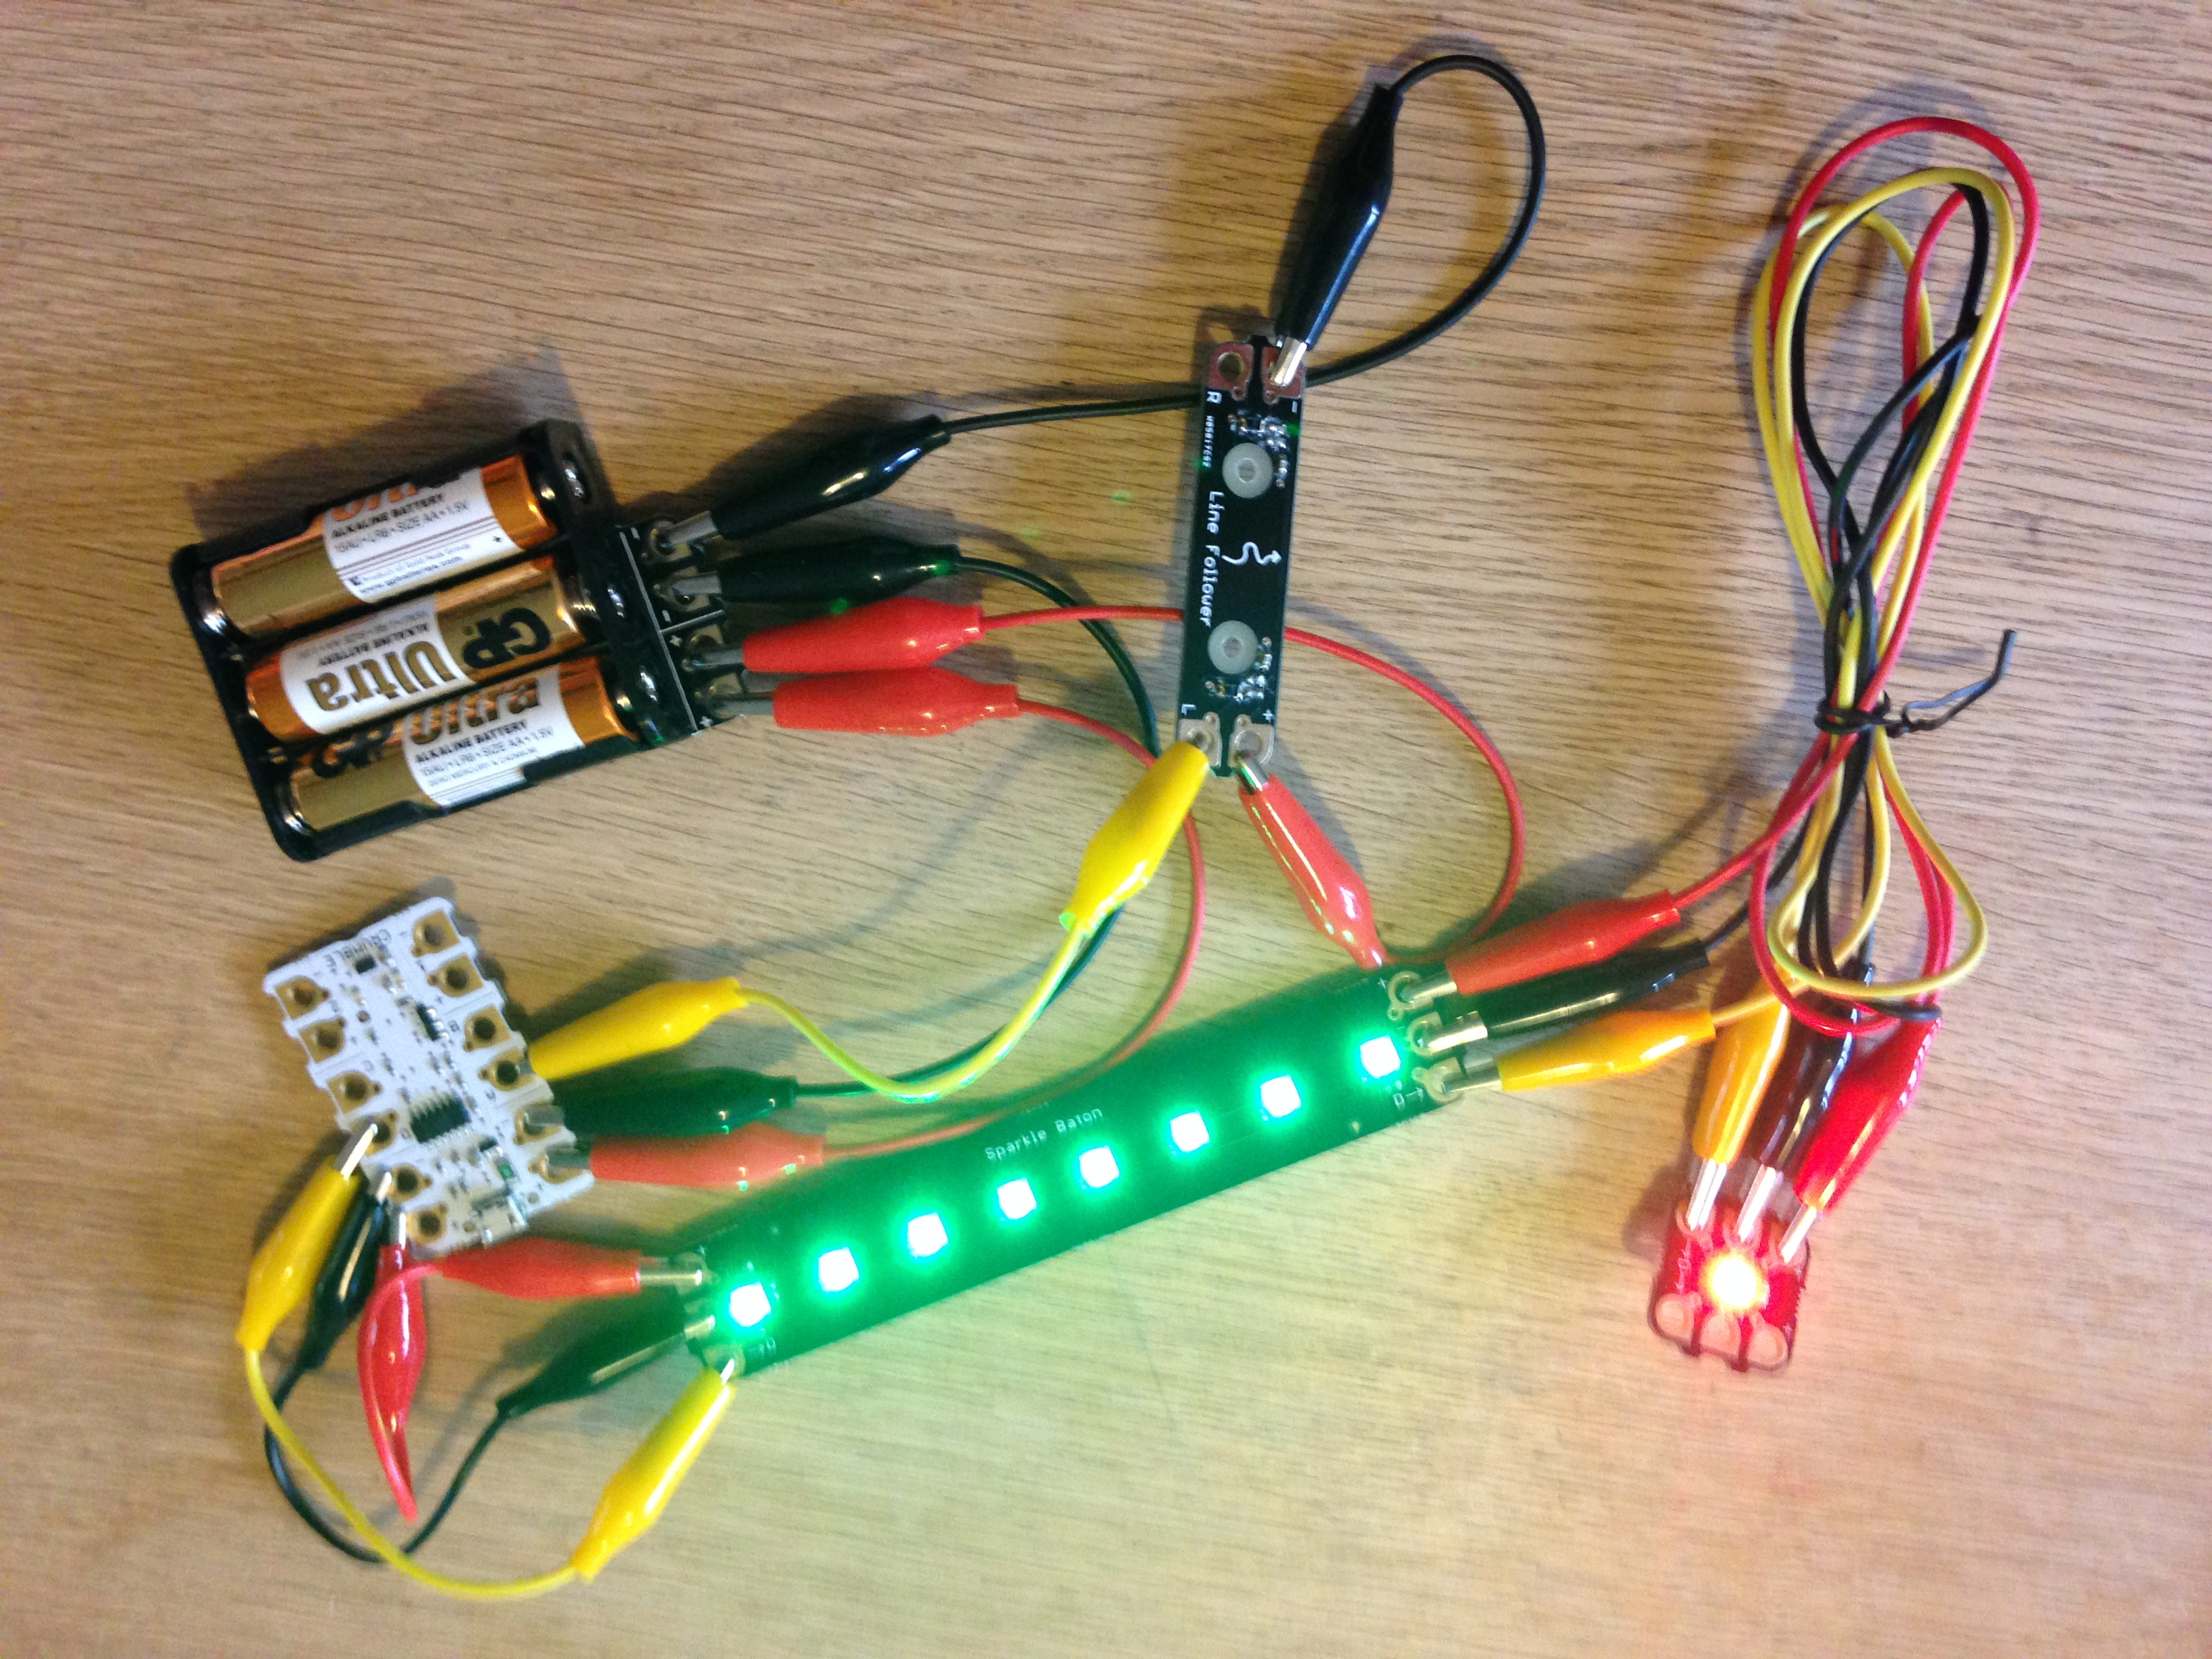 Sparkles Redfern Electronics Of The 20 Step Circuit Being Used To Control A Set Traffic Lights Sparkle Baton Was Give Spooky Green Glow Croc Leads Connect And D Pads On Right Hand Side Crumble Their